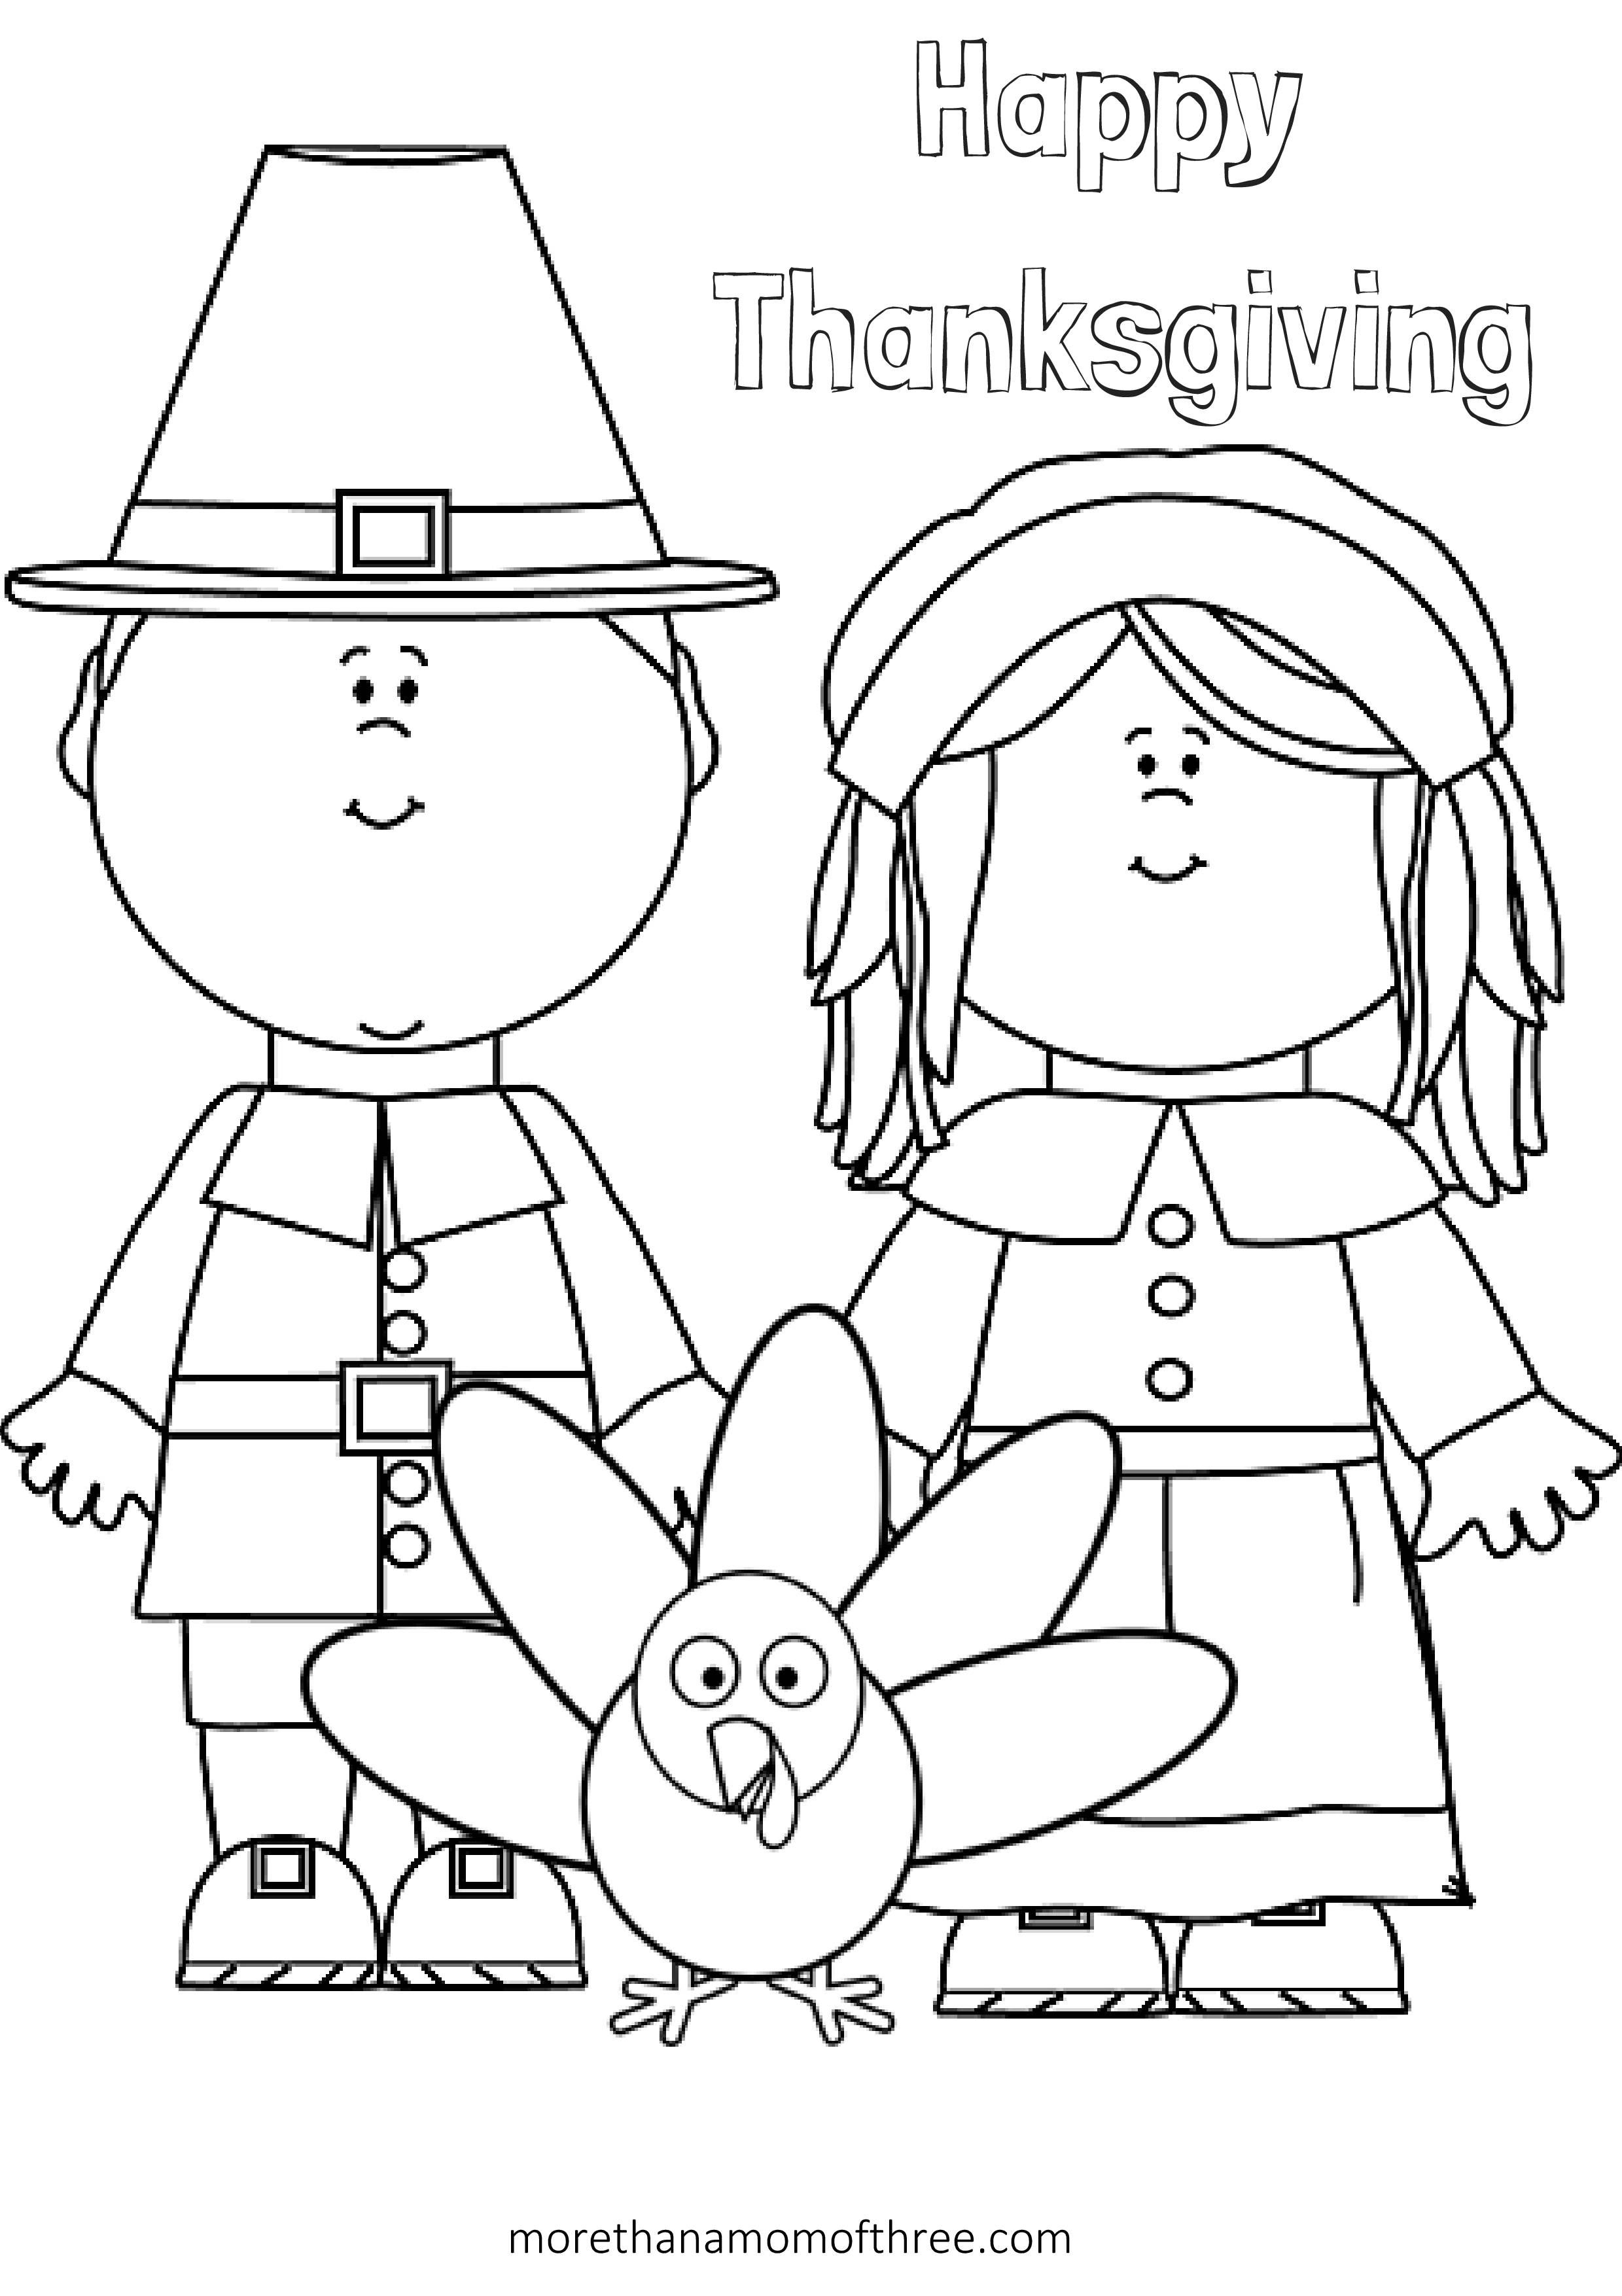 2479x3509 Awesome Free Thanksgiving Coloring Pages Printables For Kids